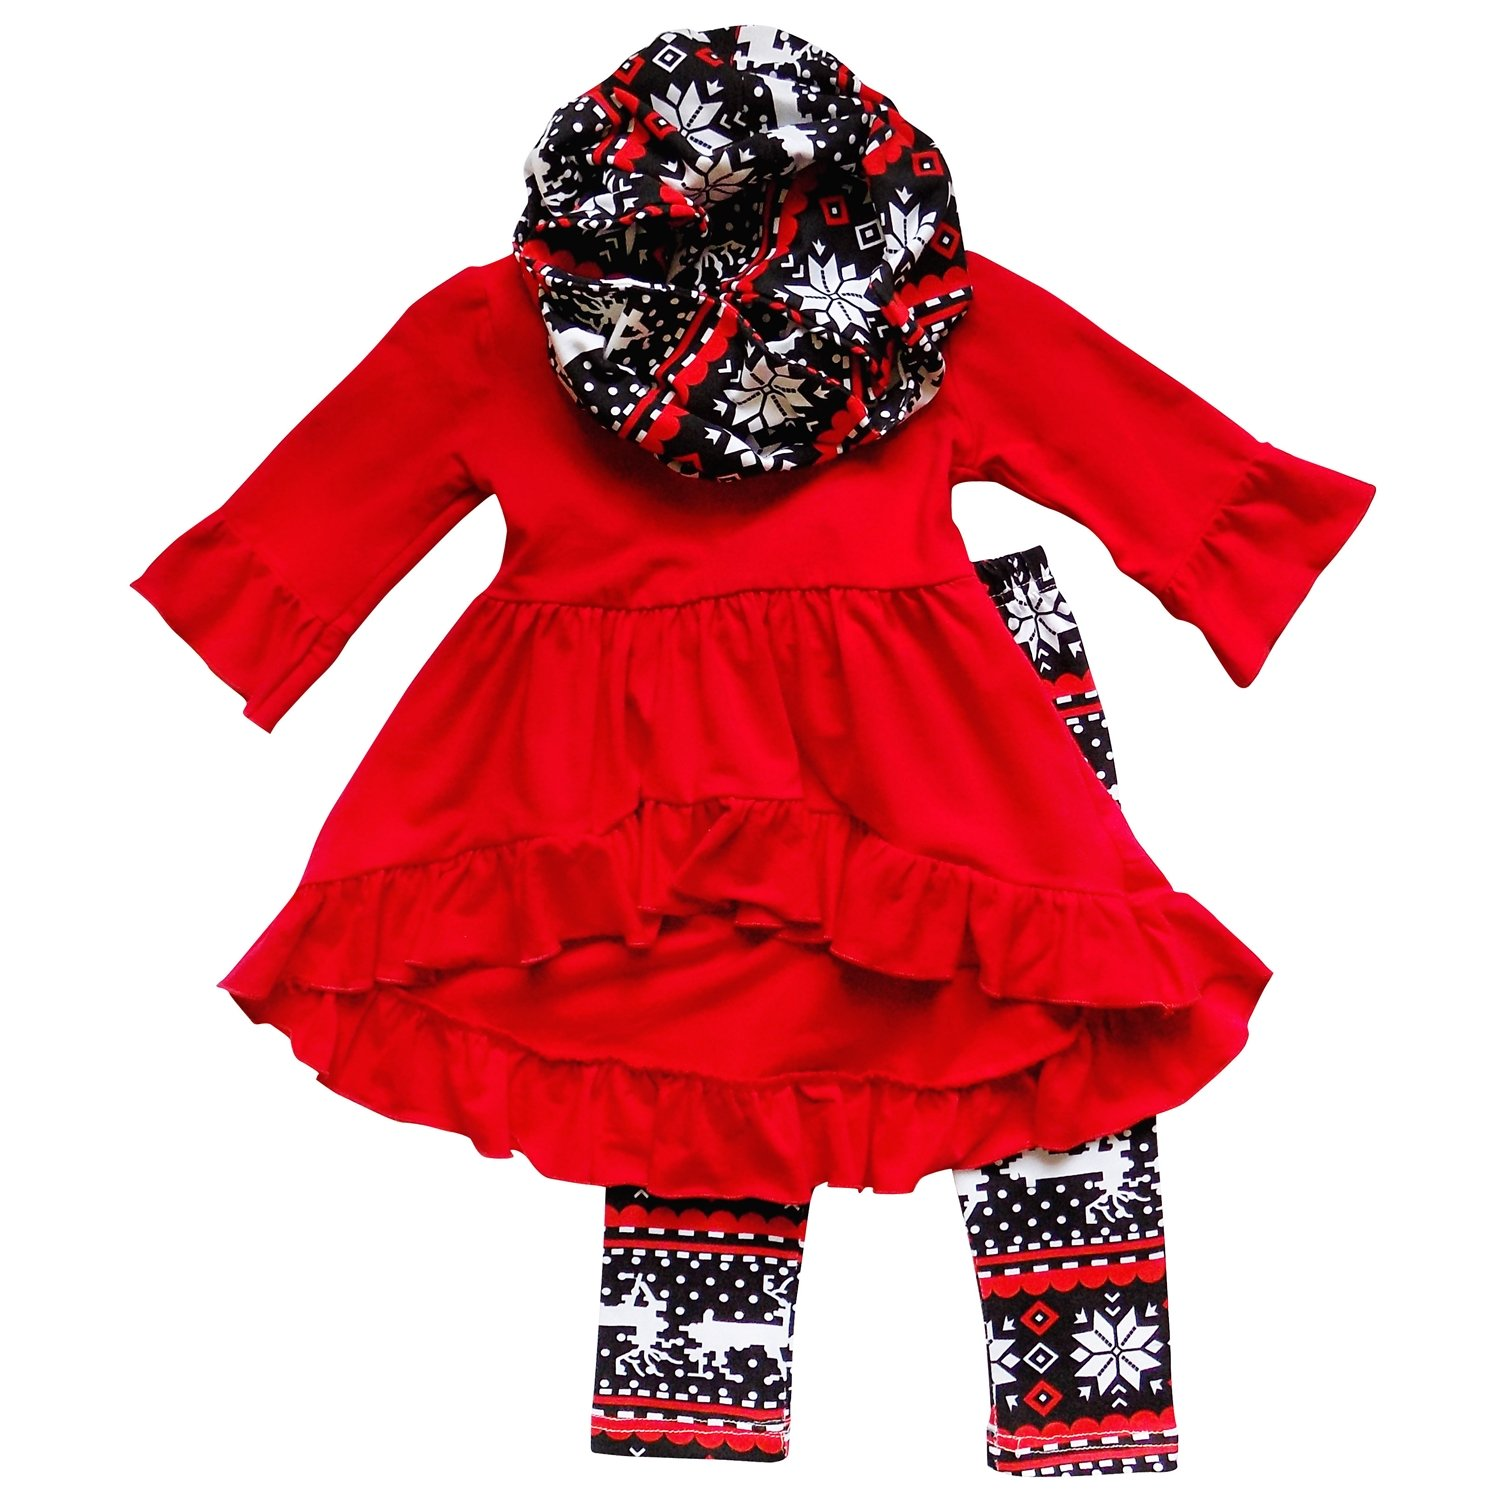 So Sydney Toddler Girls 3 Pc Hi Lo Christmas Holiday Ruffle Tunic Outfit, Scarf (S (3T), Red Fair Isle Reindeer)